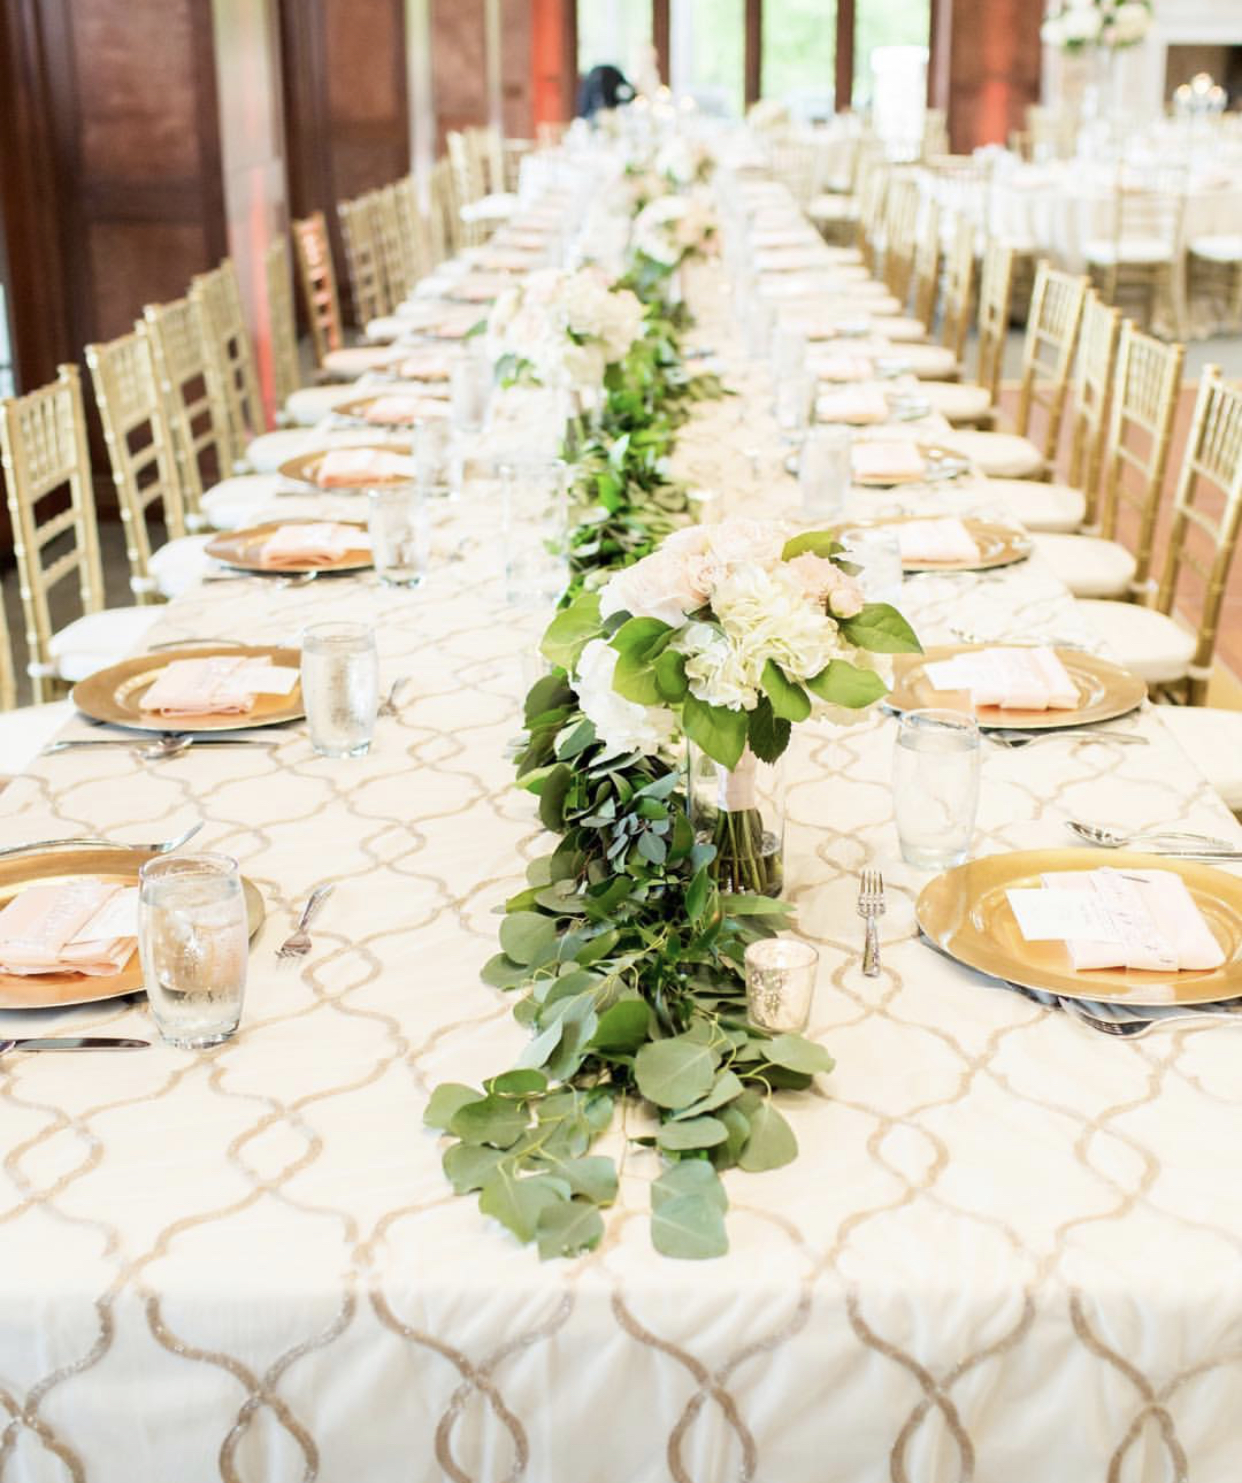 houston event planning inc|houston e